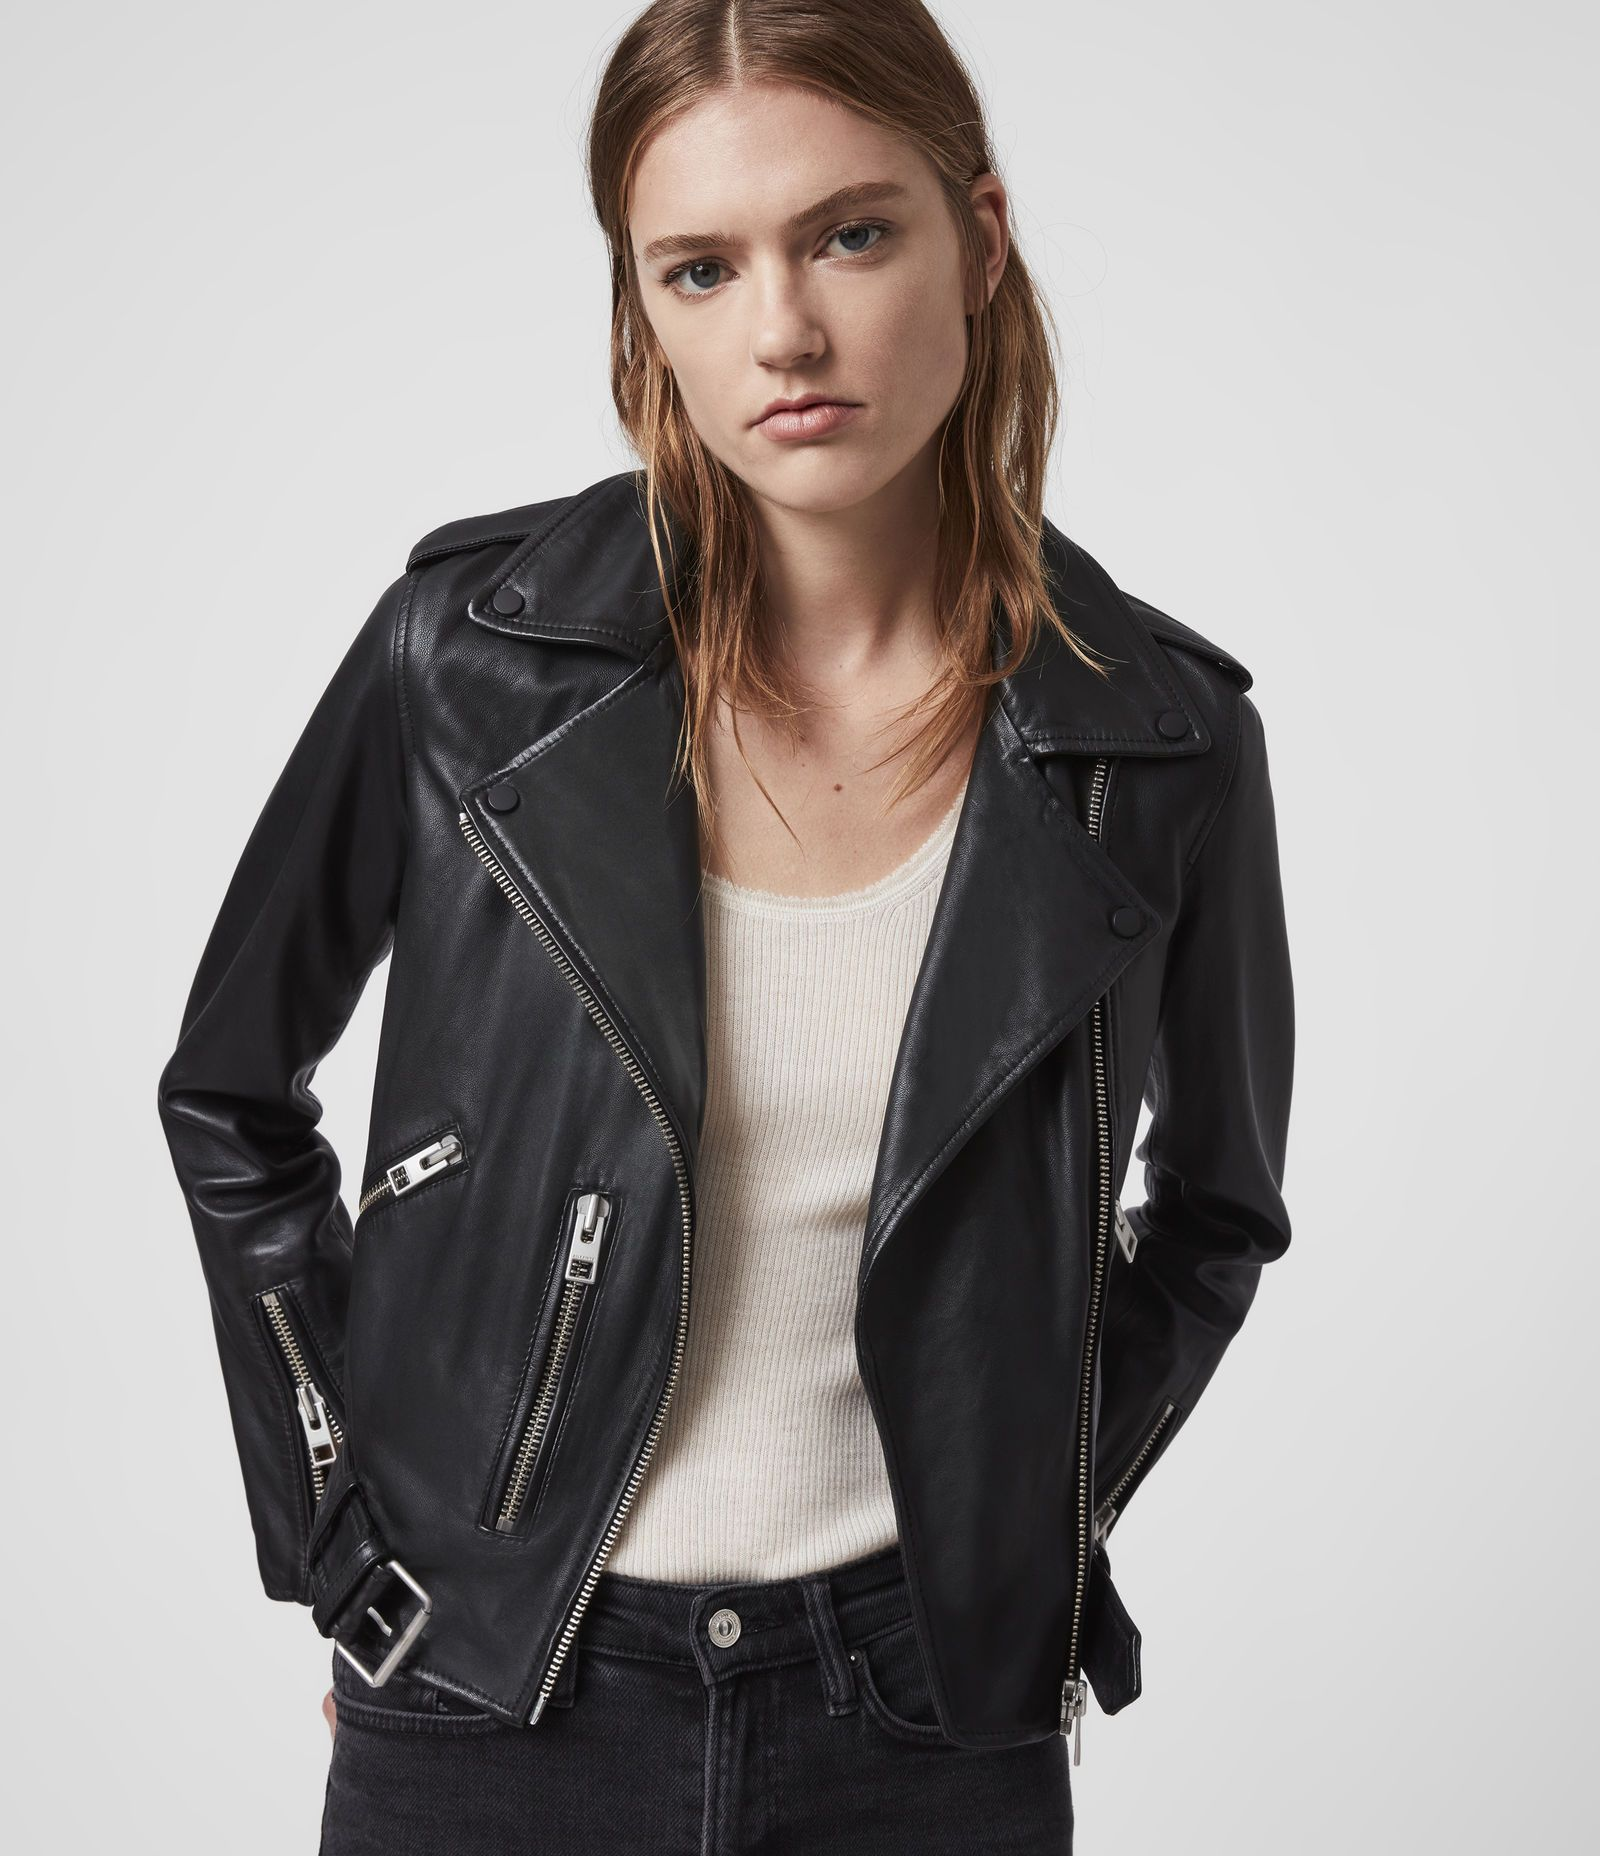 Best leather jackets for women 2020